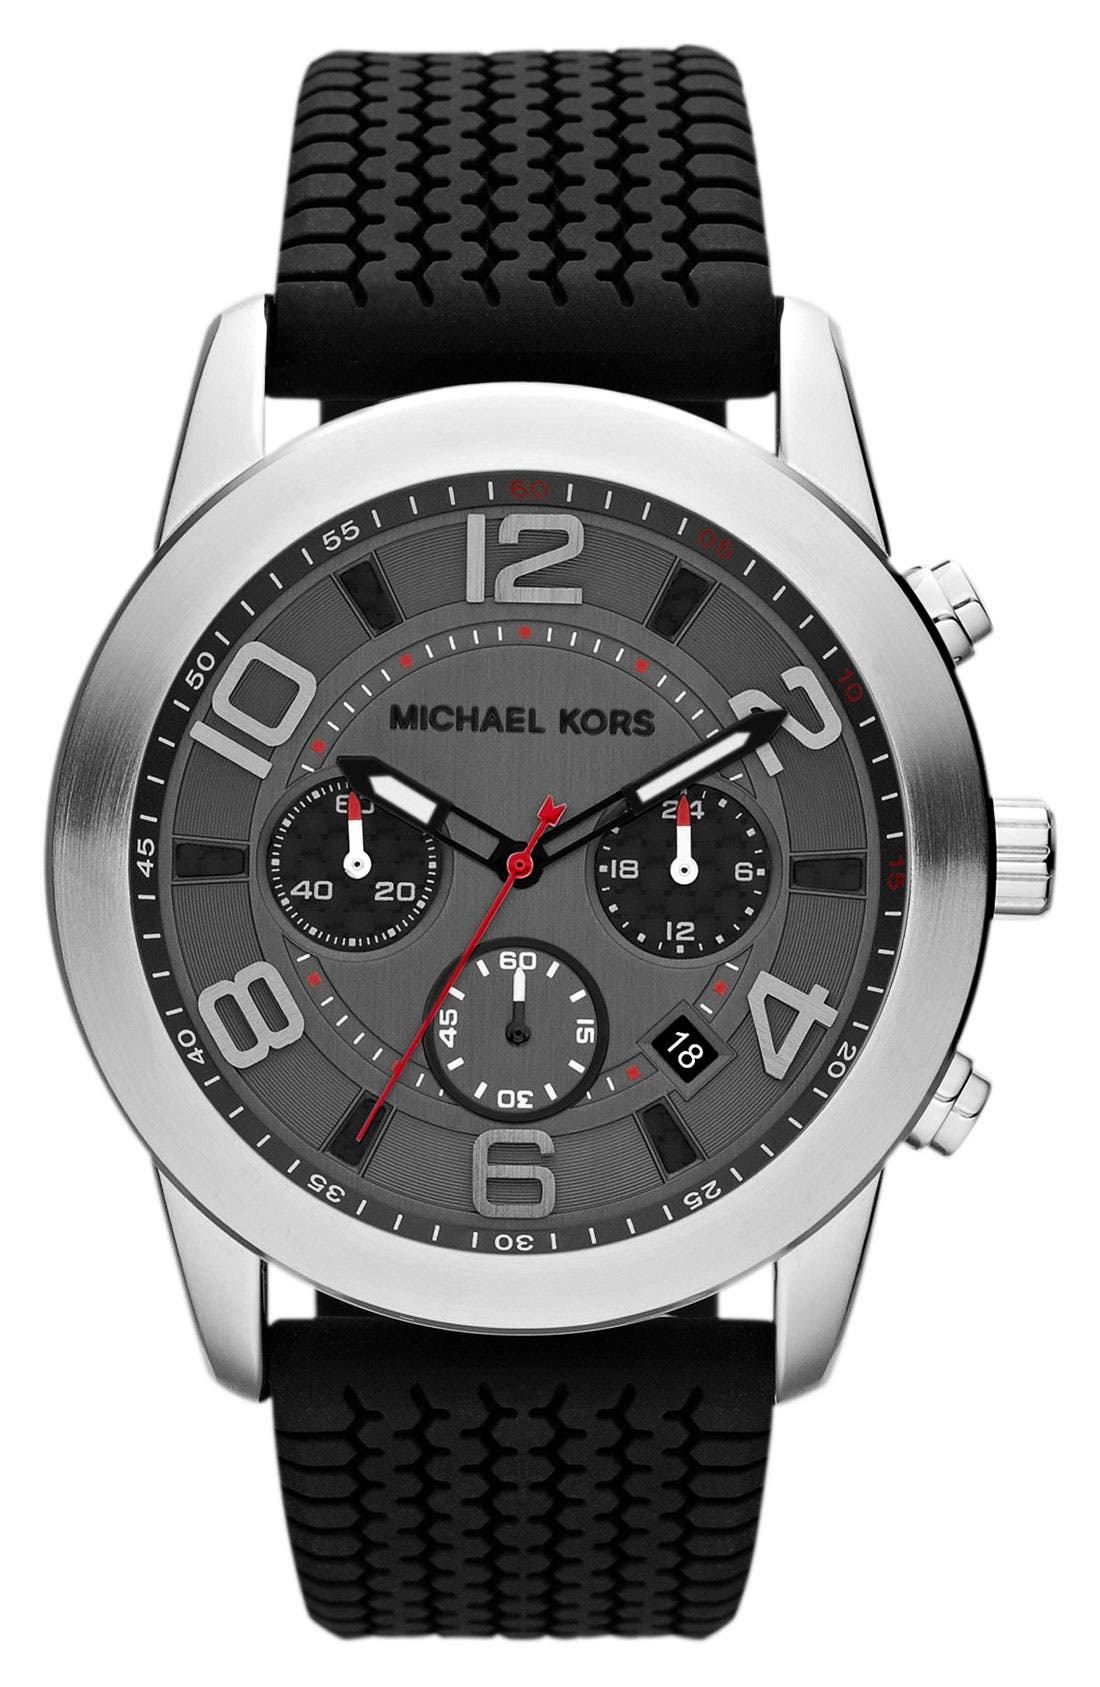 Main Image - Michael Kors 'Mercer' Large Chronograph Watch, 45mm